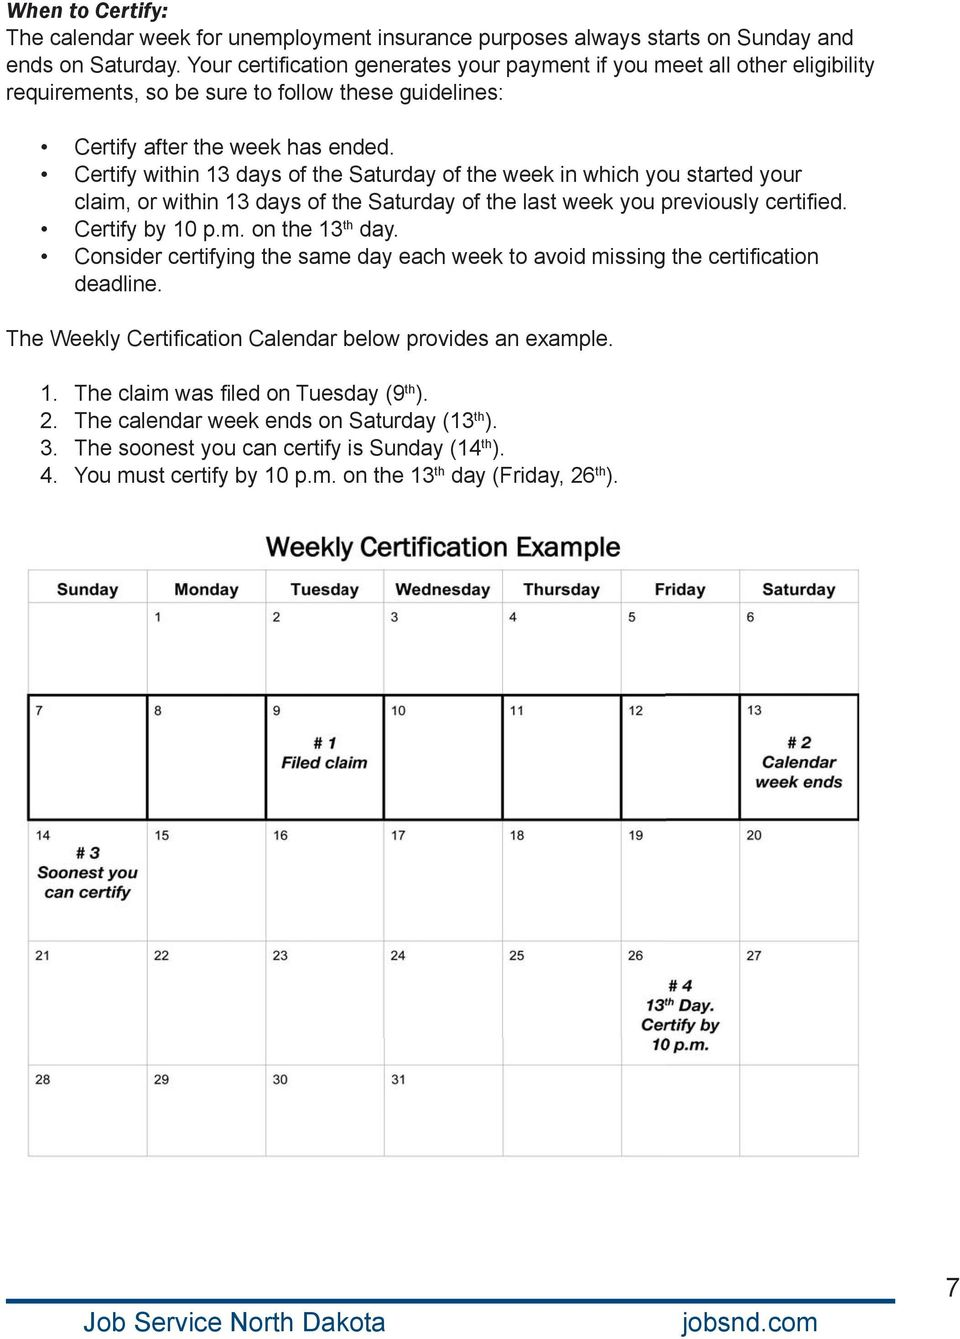 Certify within 13 days of the Saturday of the week in which you started your claim, or within 13 days of the Saturday of the last week you previously certifi ed. Certify by 10 p.m. on the 13 th day.